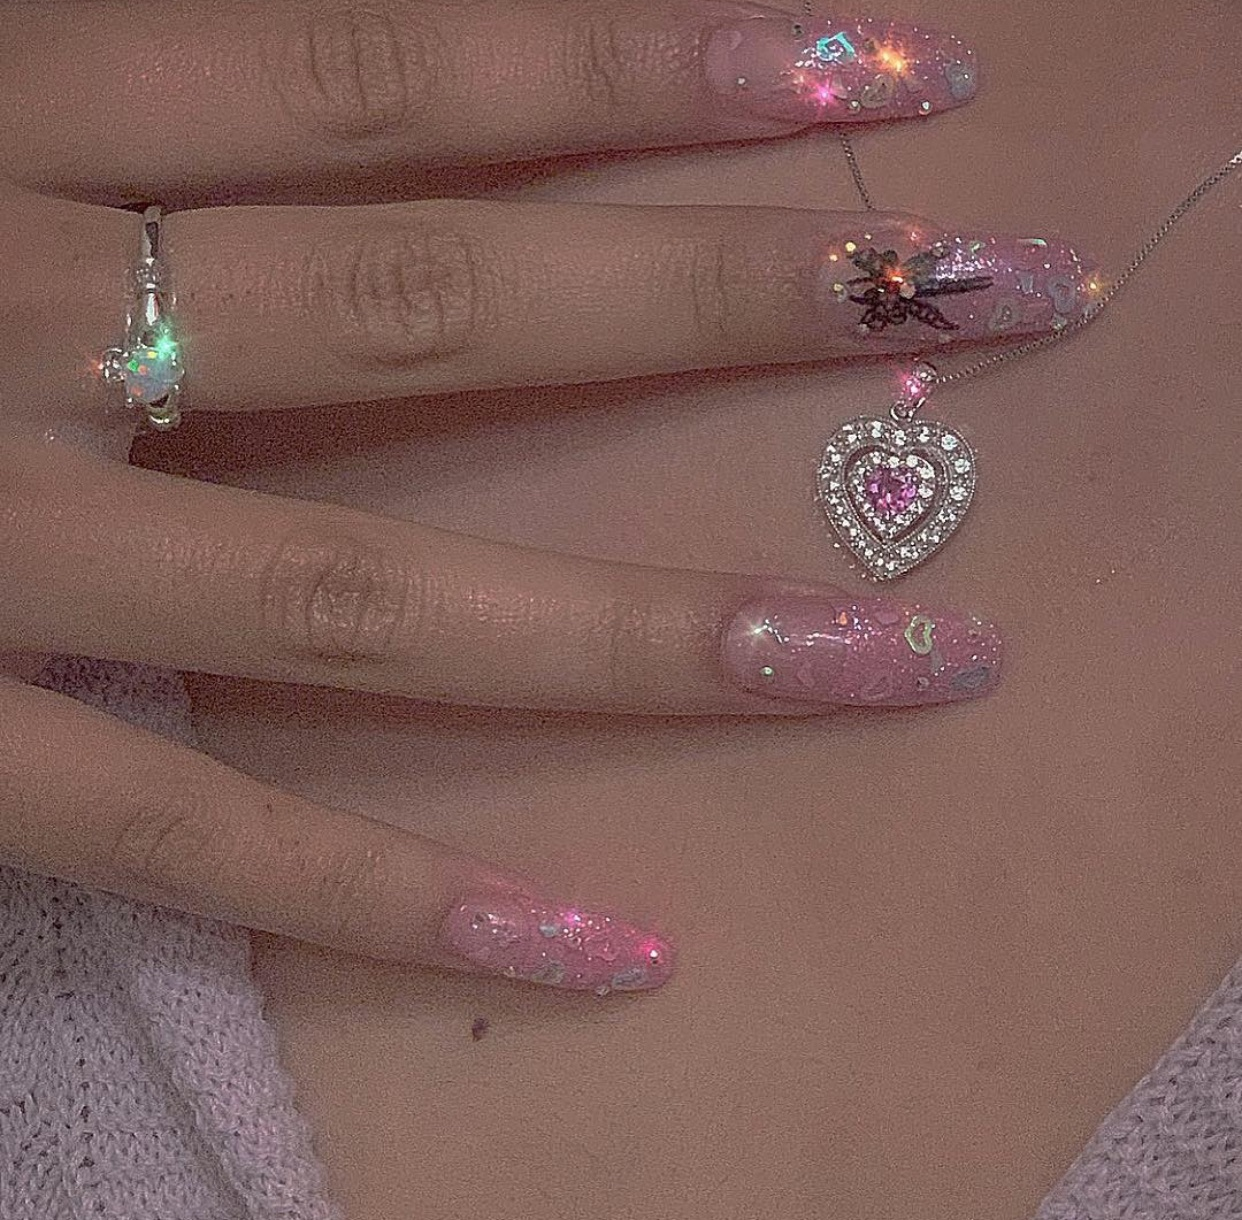 tumblr inspo, long nails, perfect inspiration and perfect outfit